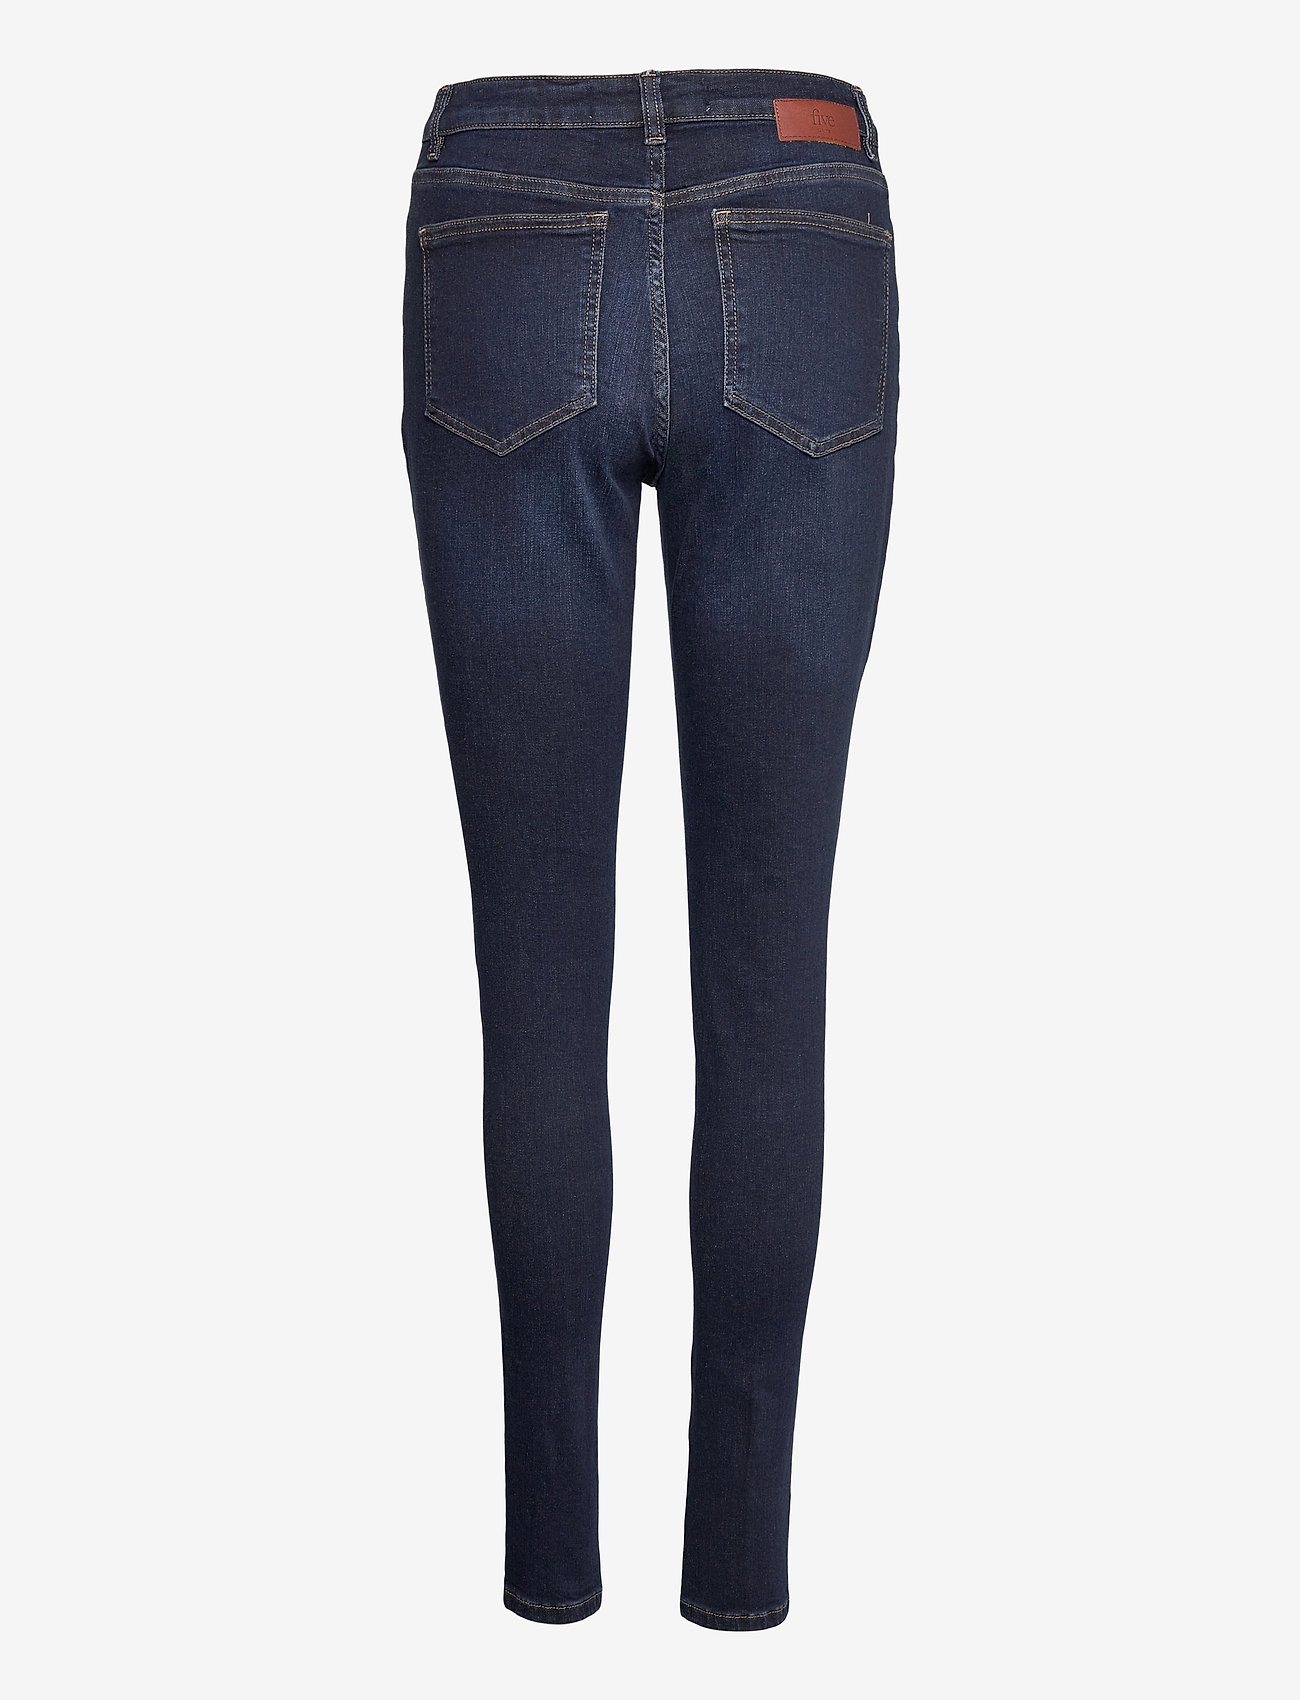 FIVEUNITS - Kate 893 - skinny jeans - galaxy blue ease - 1